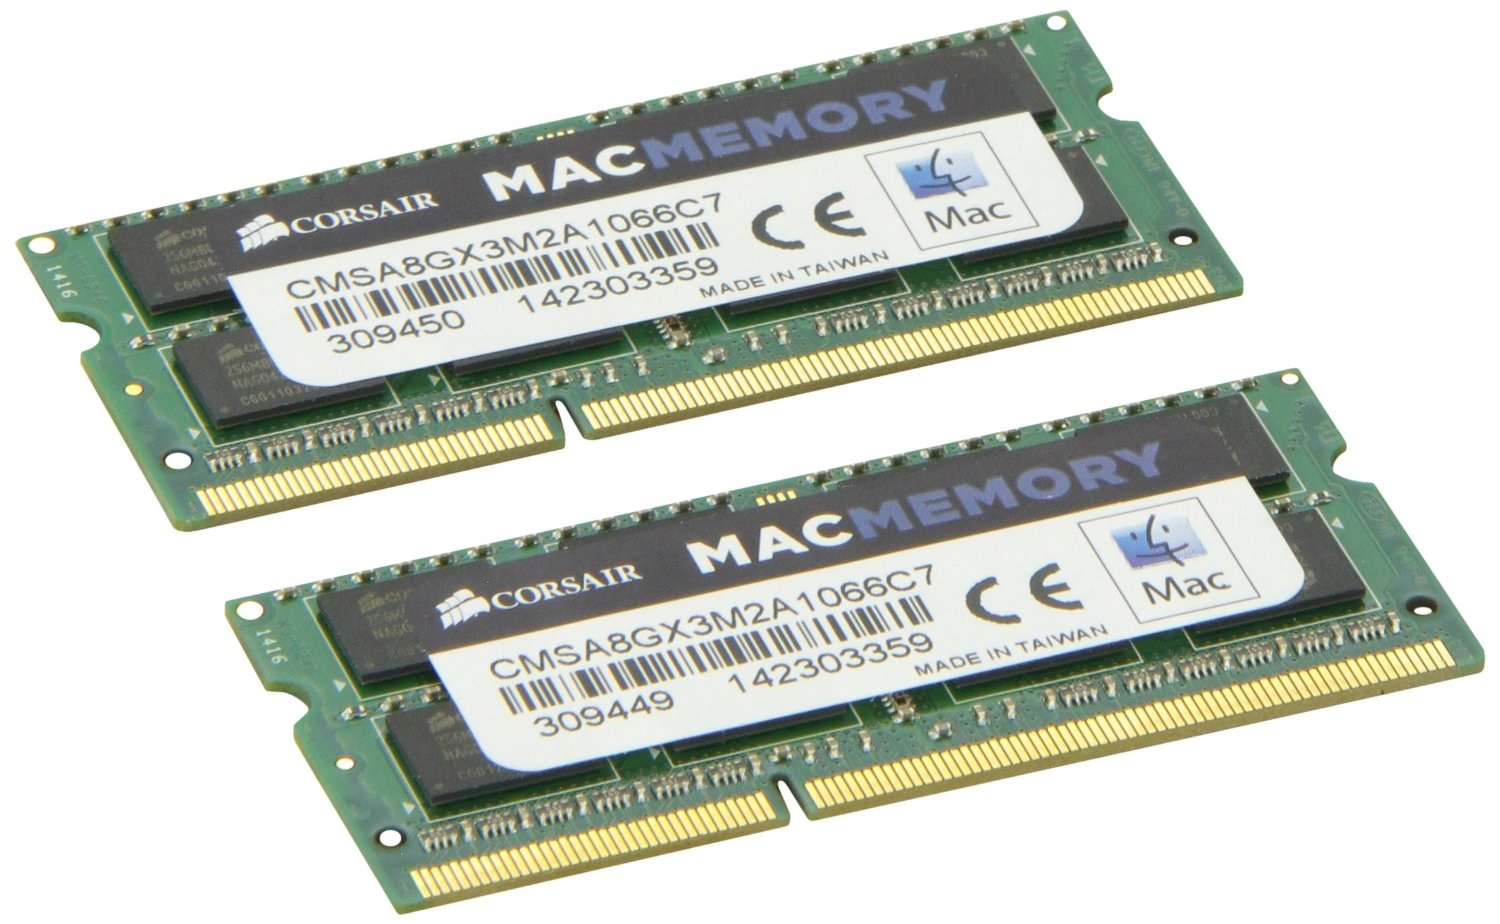 Ddr3 So Dimm Laptop Computer Memory Upgrade From 1066mhz